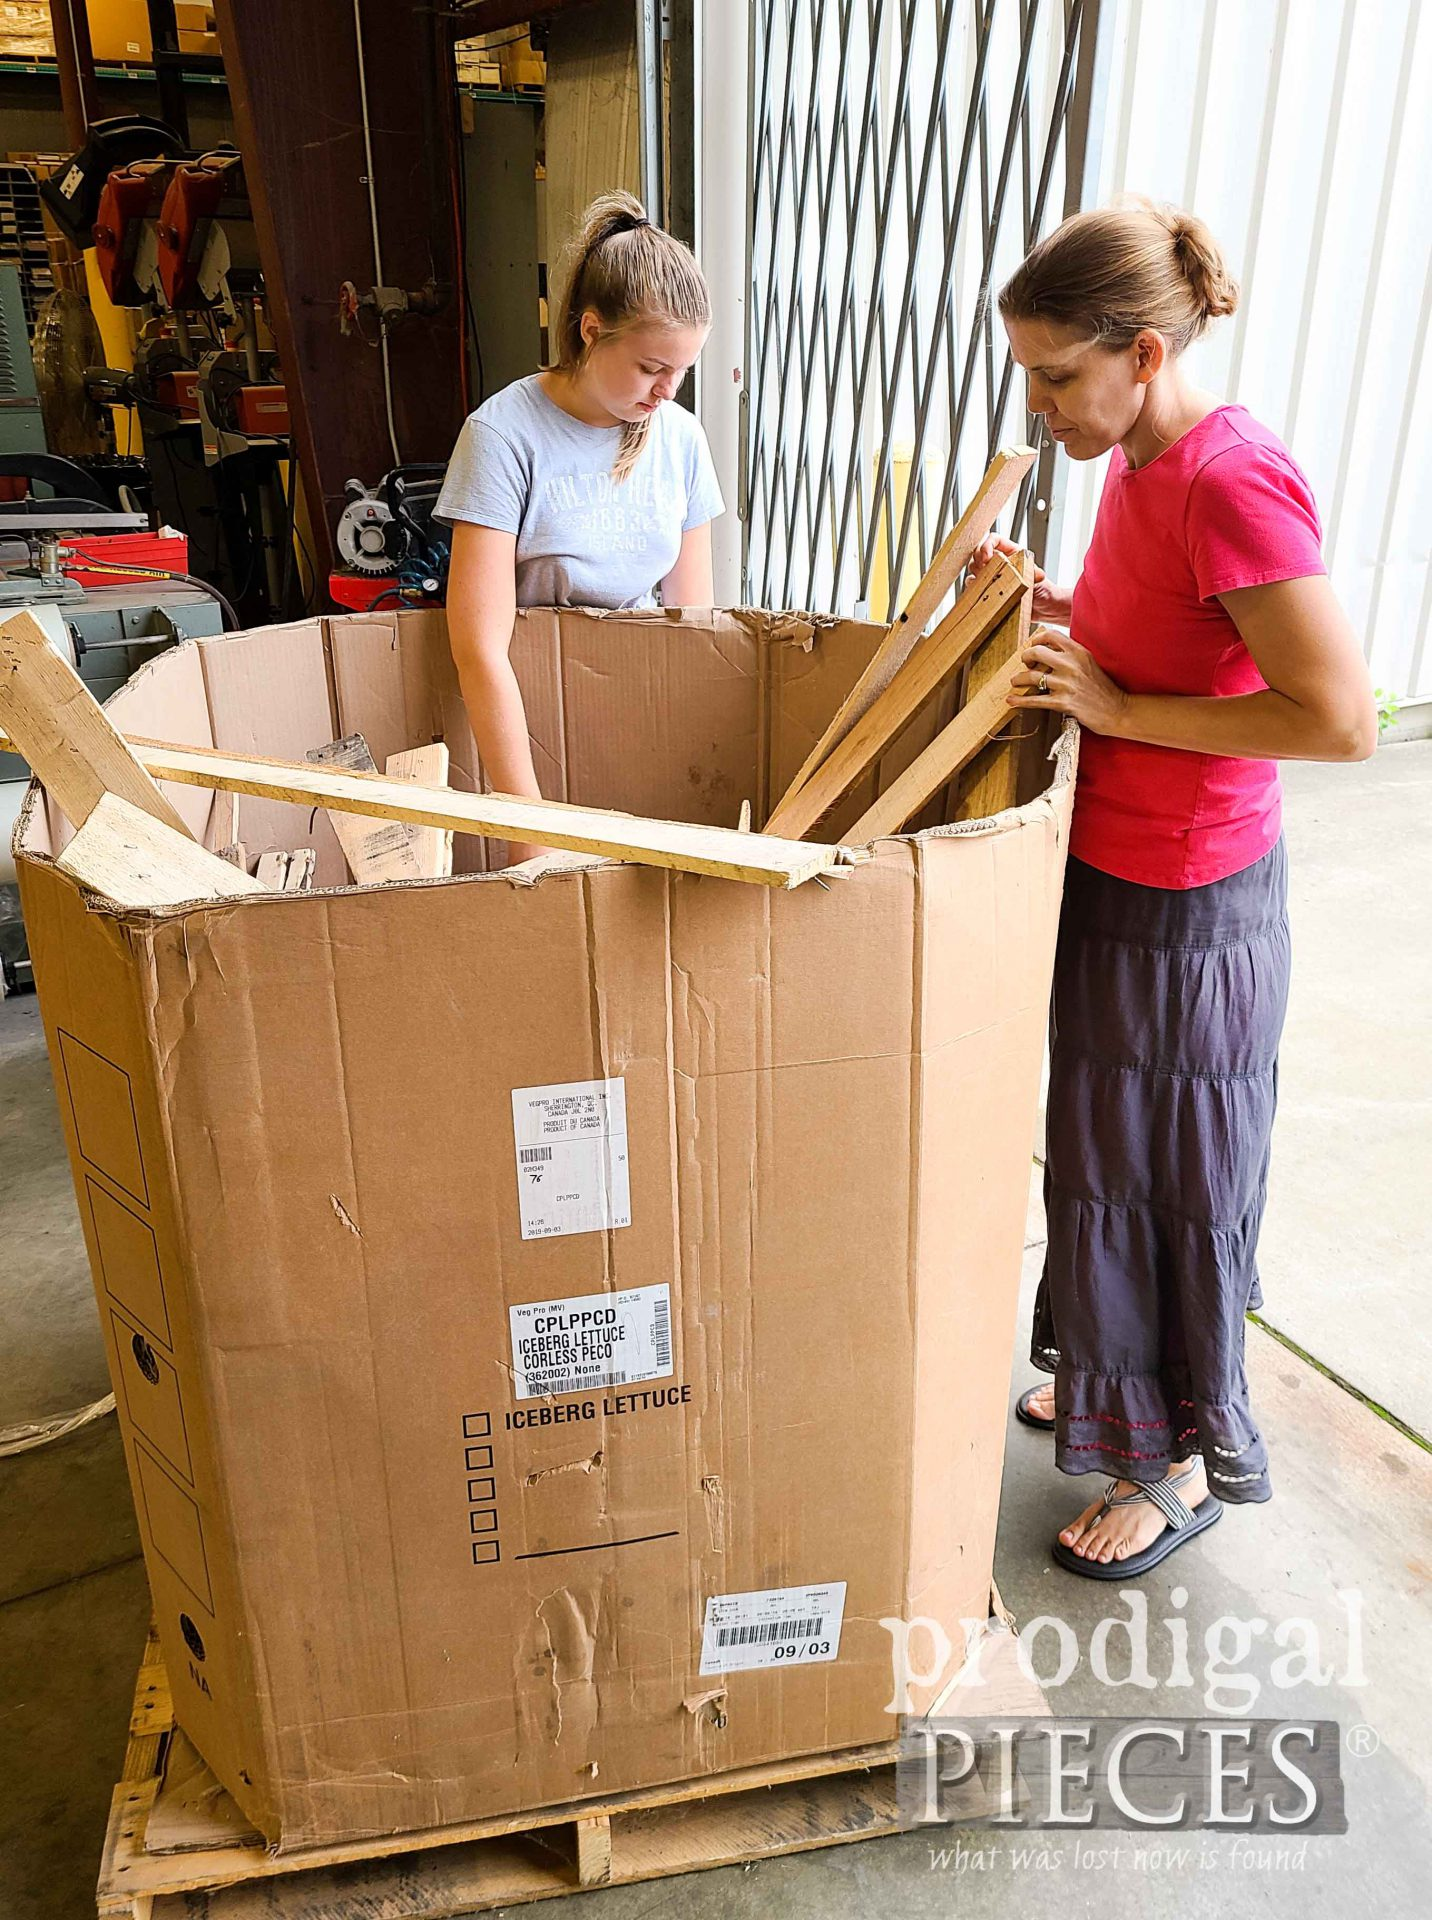 Sorting Pallet Wood by Prodigal Pieces | prodigalpieces.com #prodigalpieces